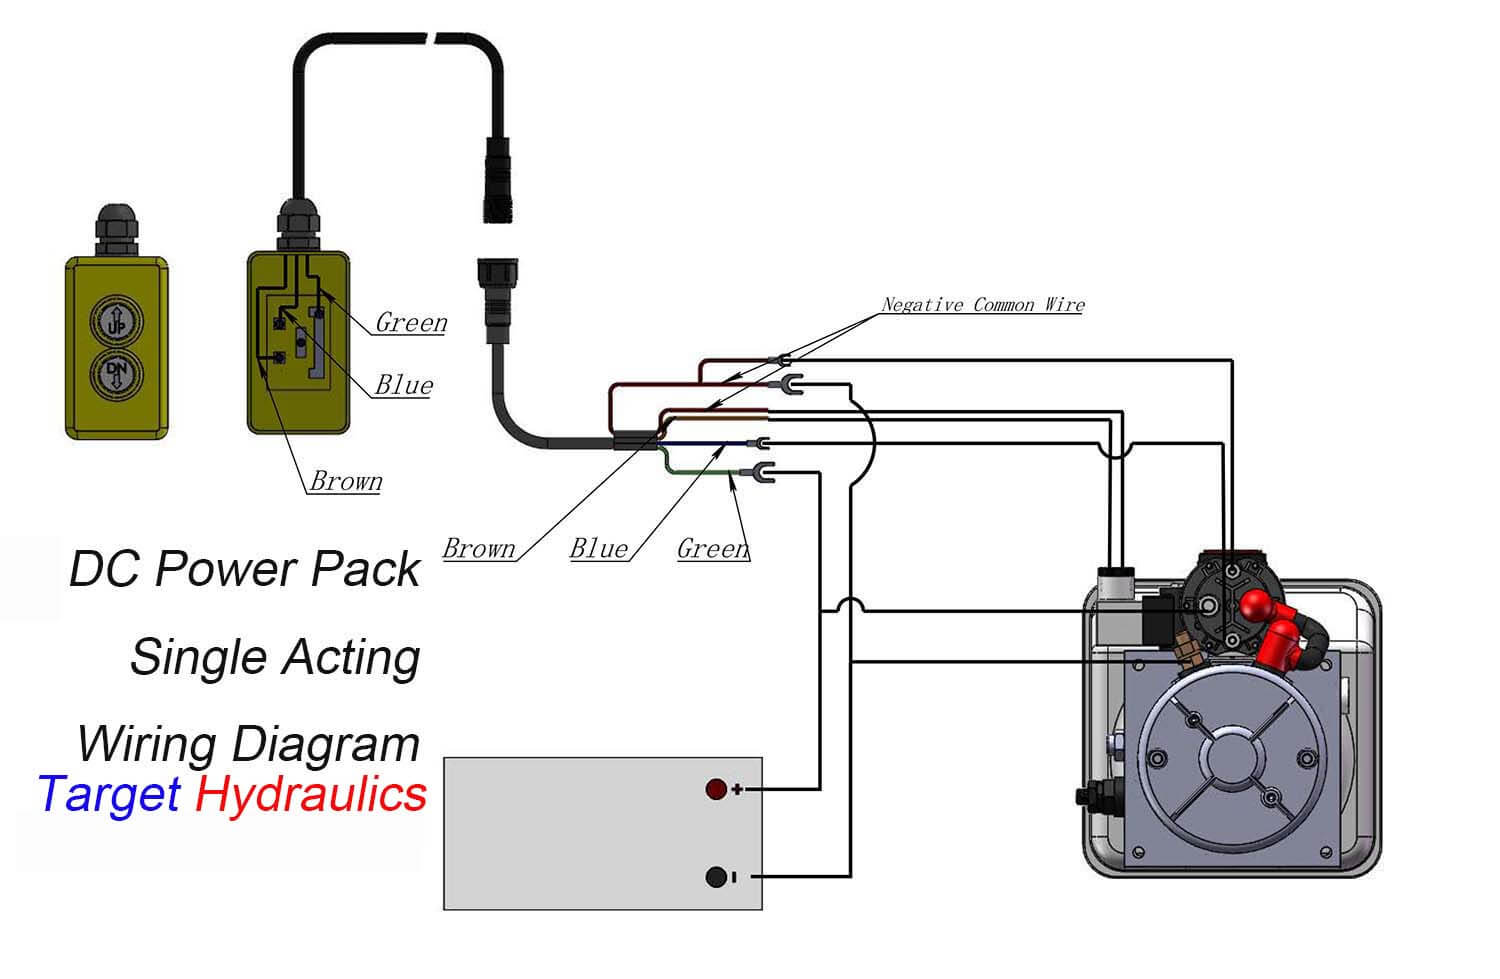 How to Wire_DC Motor Single Acting Power Pack how to wire hydraulic power pack,power unit diagram design 110 Power Cord Diagram at fashall.co